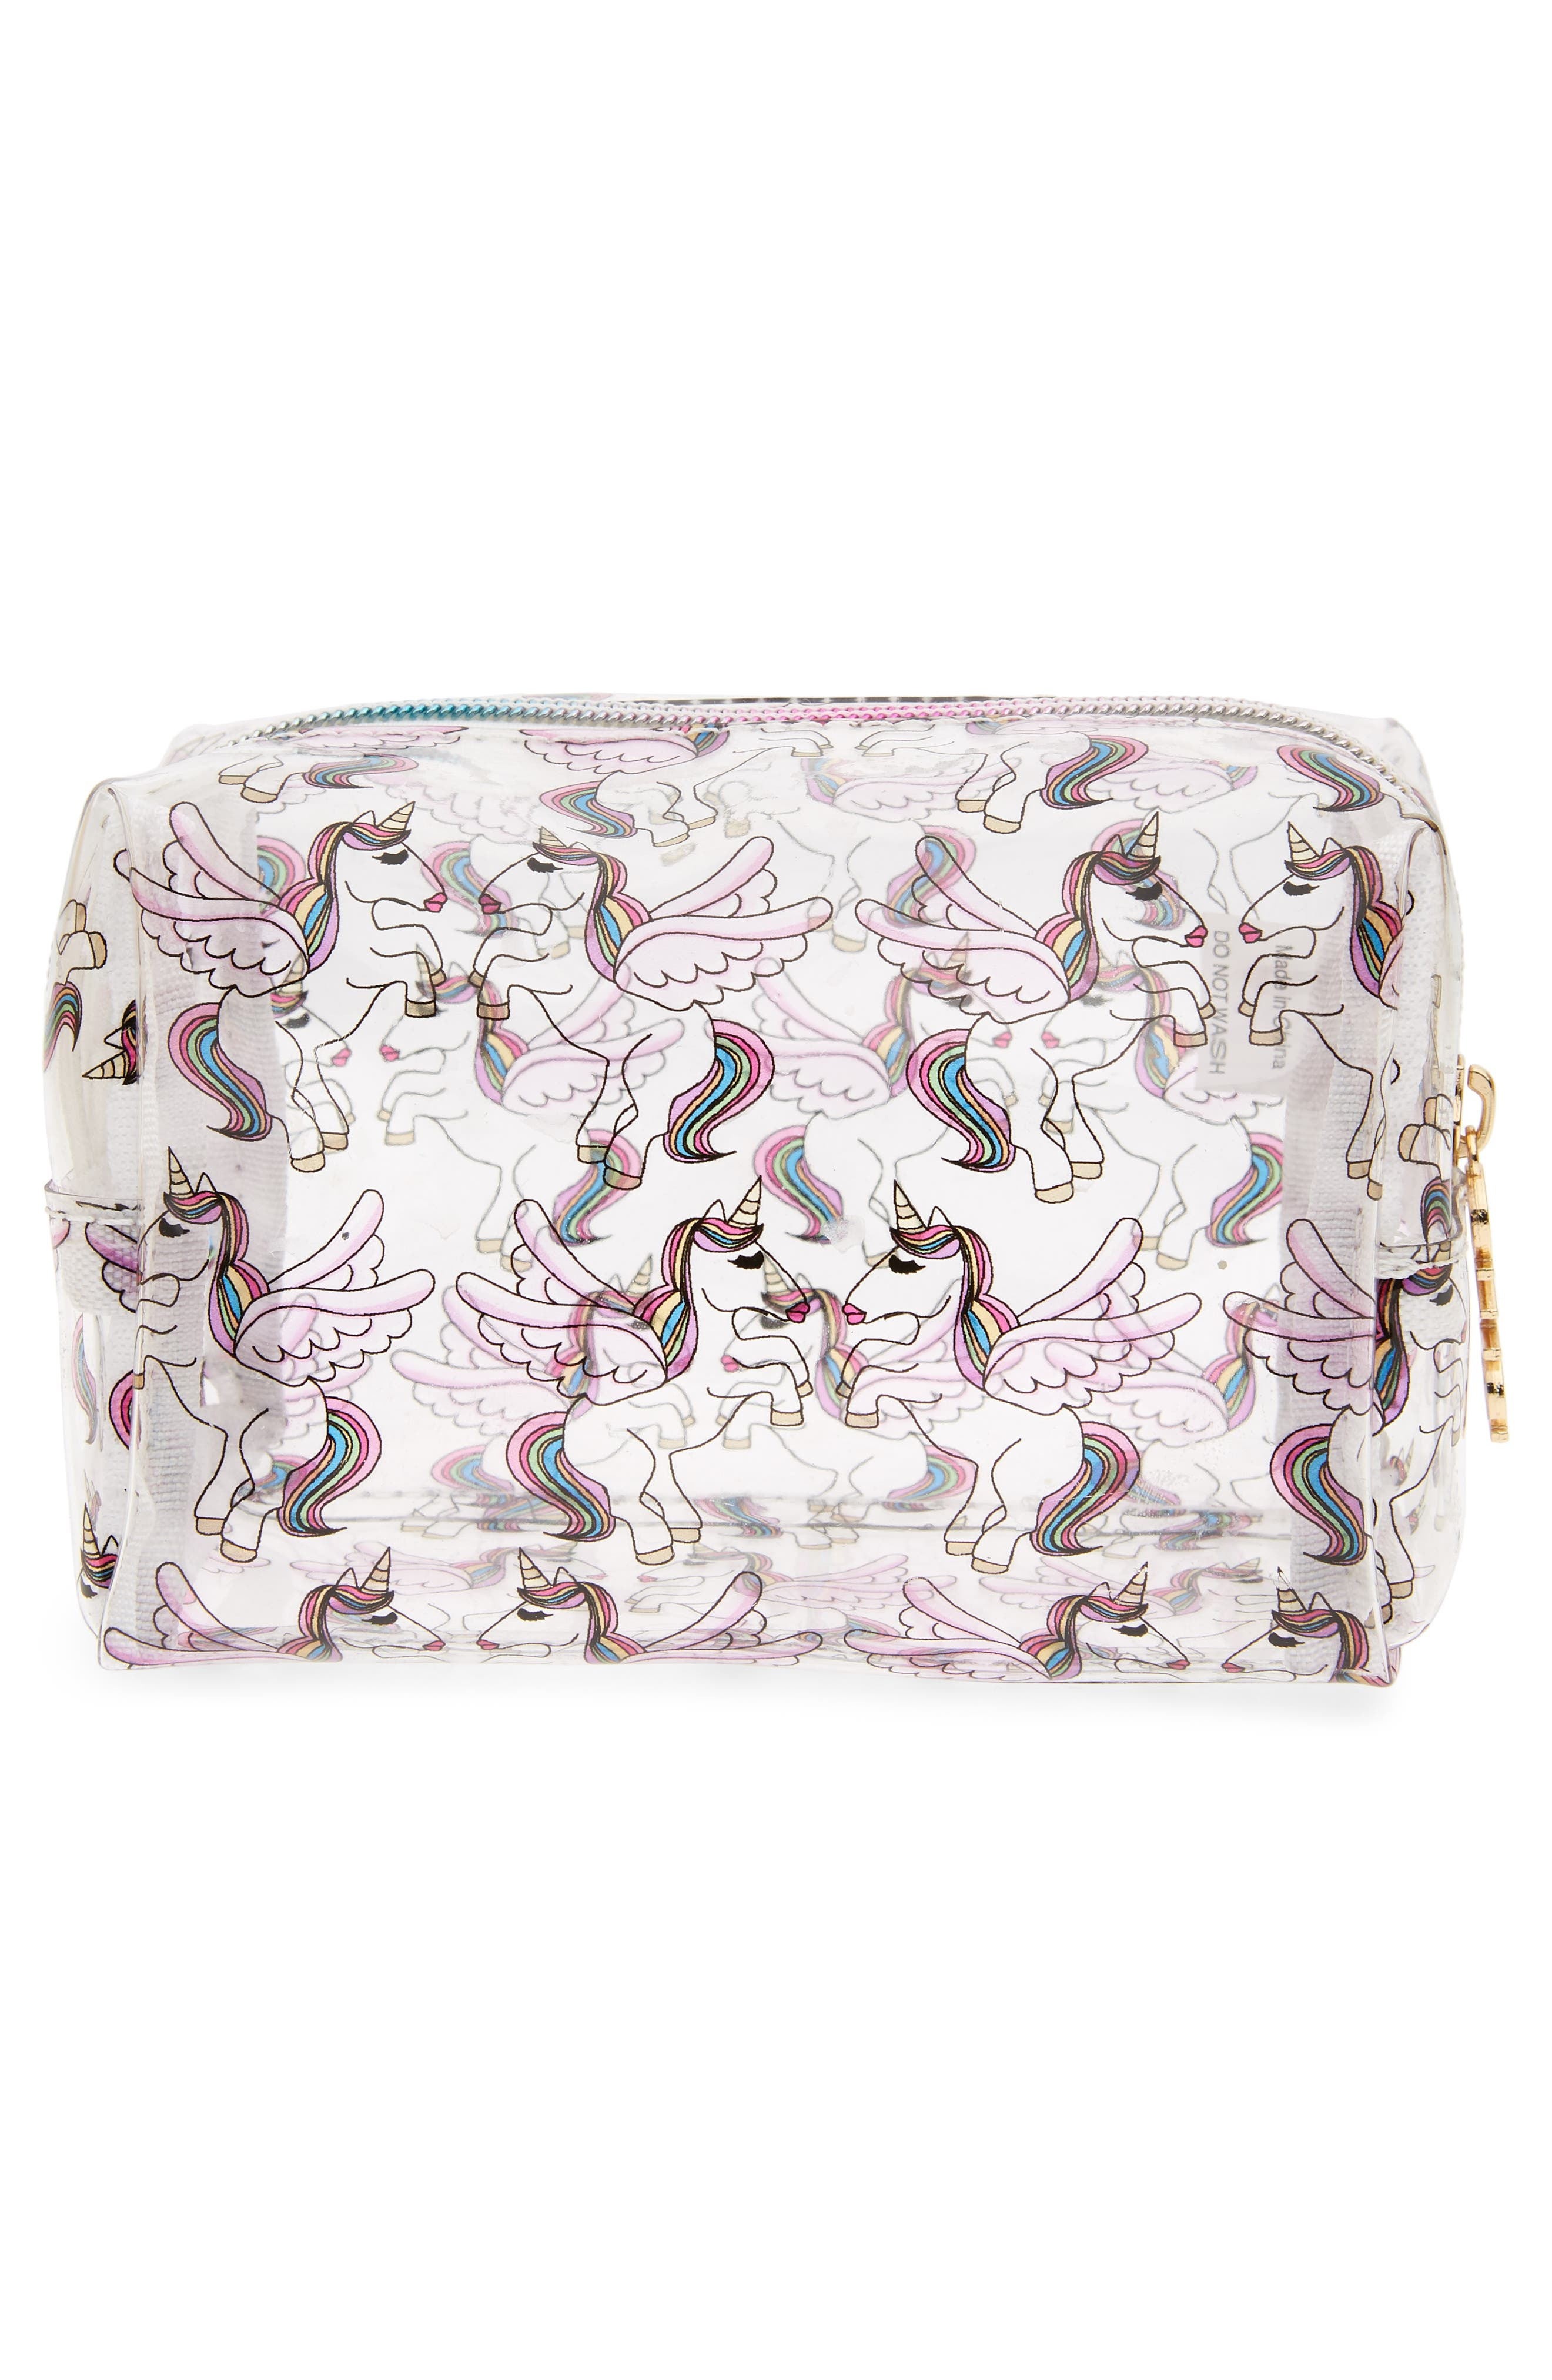 Unicorn Cosmetics Case,                             Alternate thumbnail 2, color,                             Multi